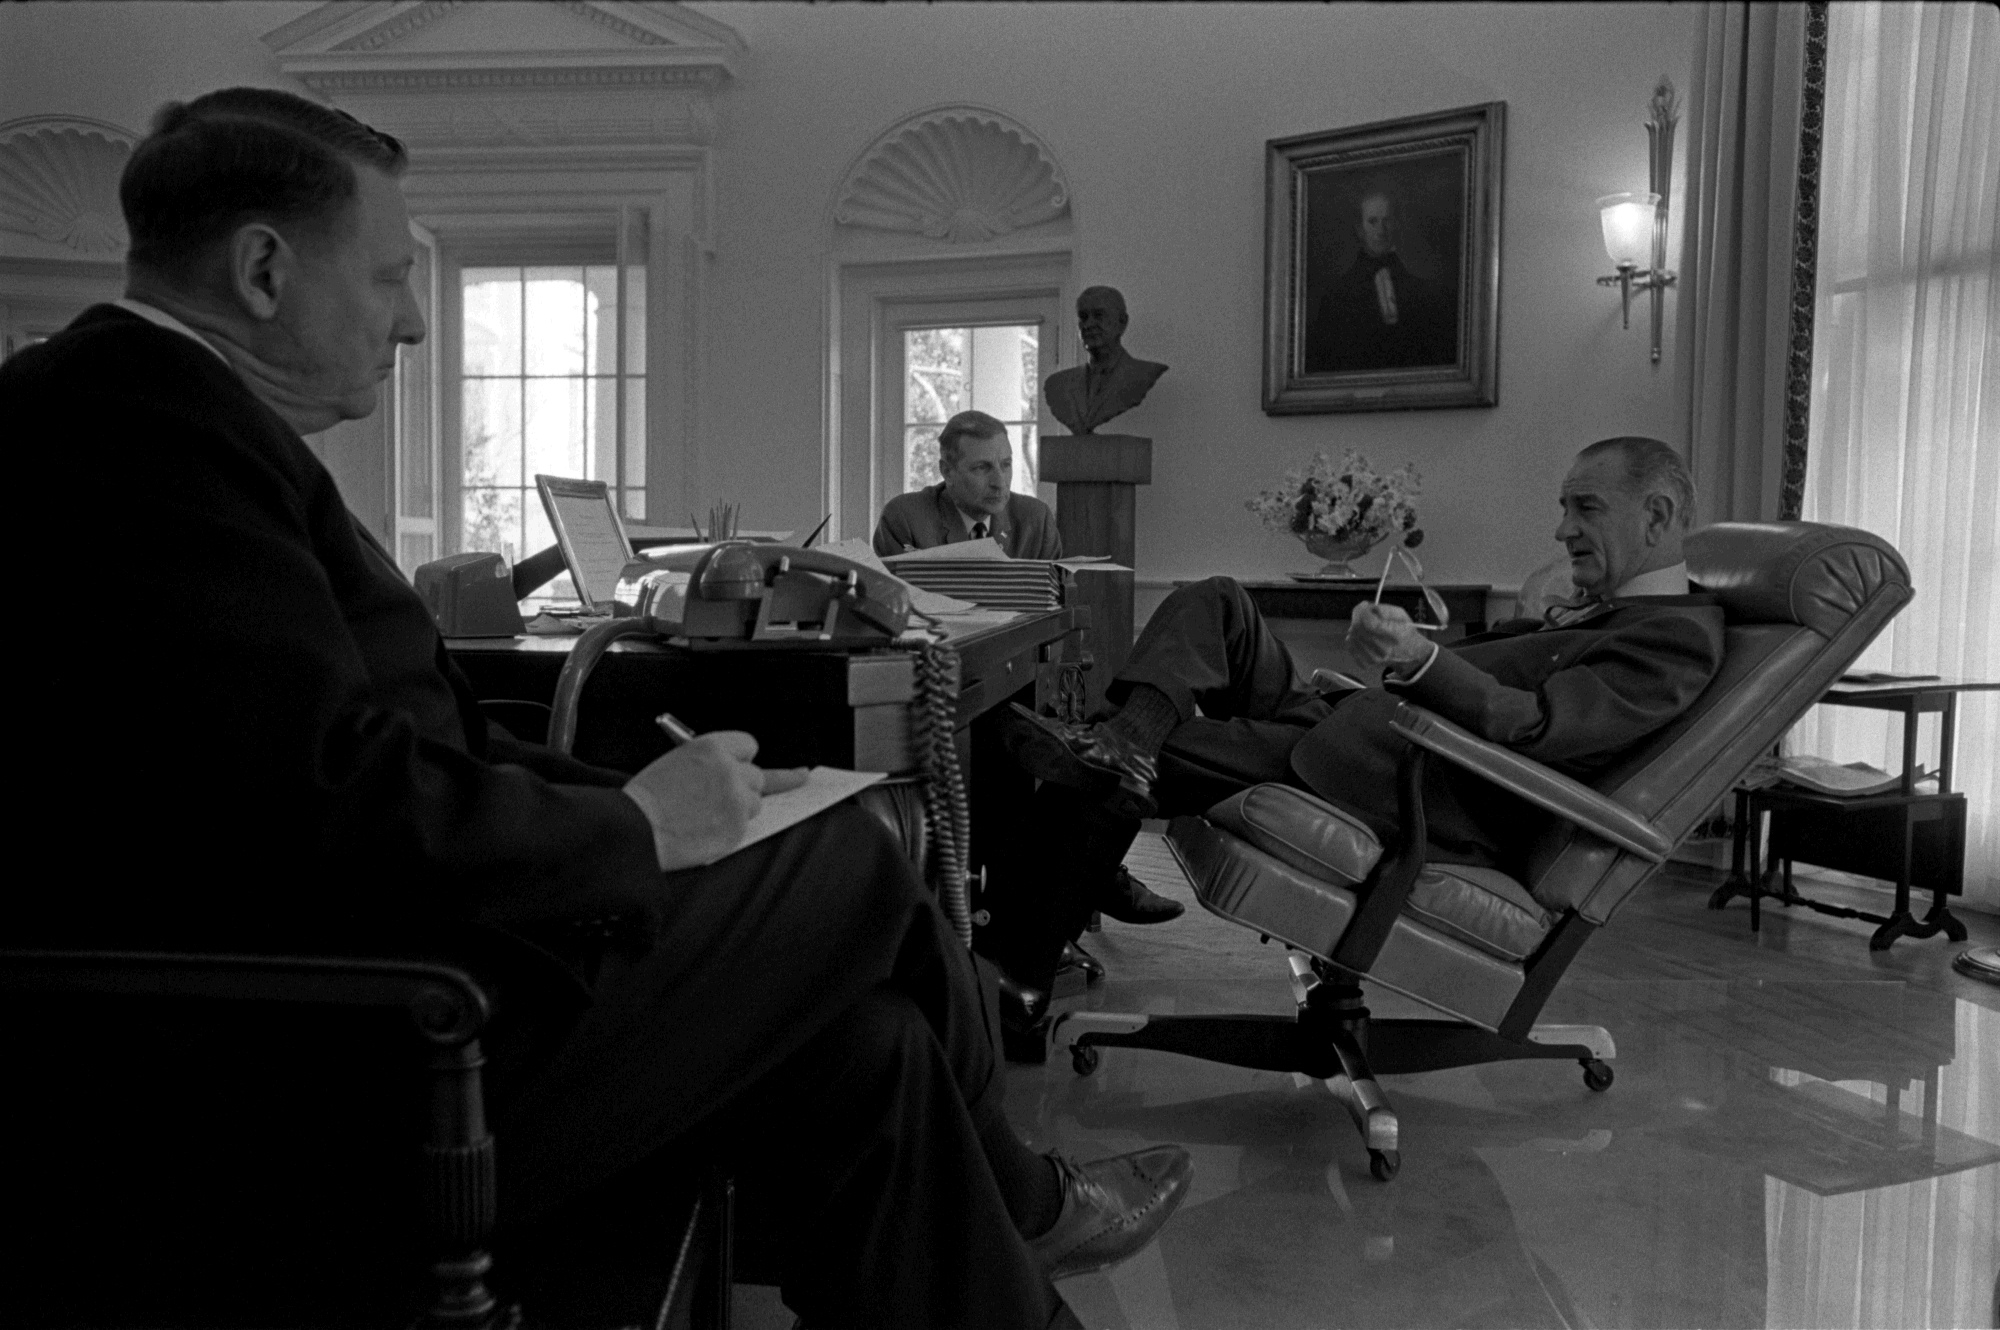 lbj oval office. File:Oval Office LBJ 2.jpg Lbj Oval